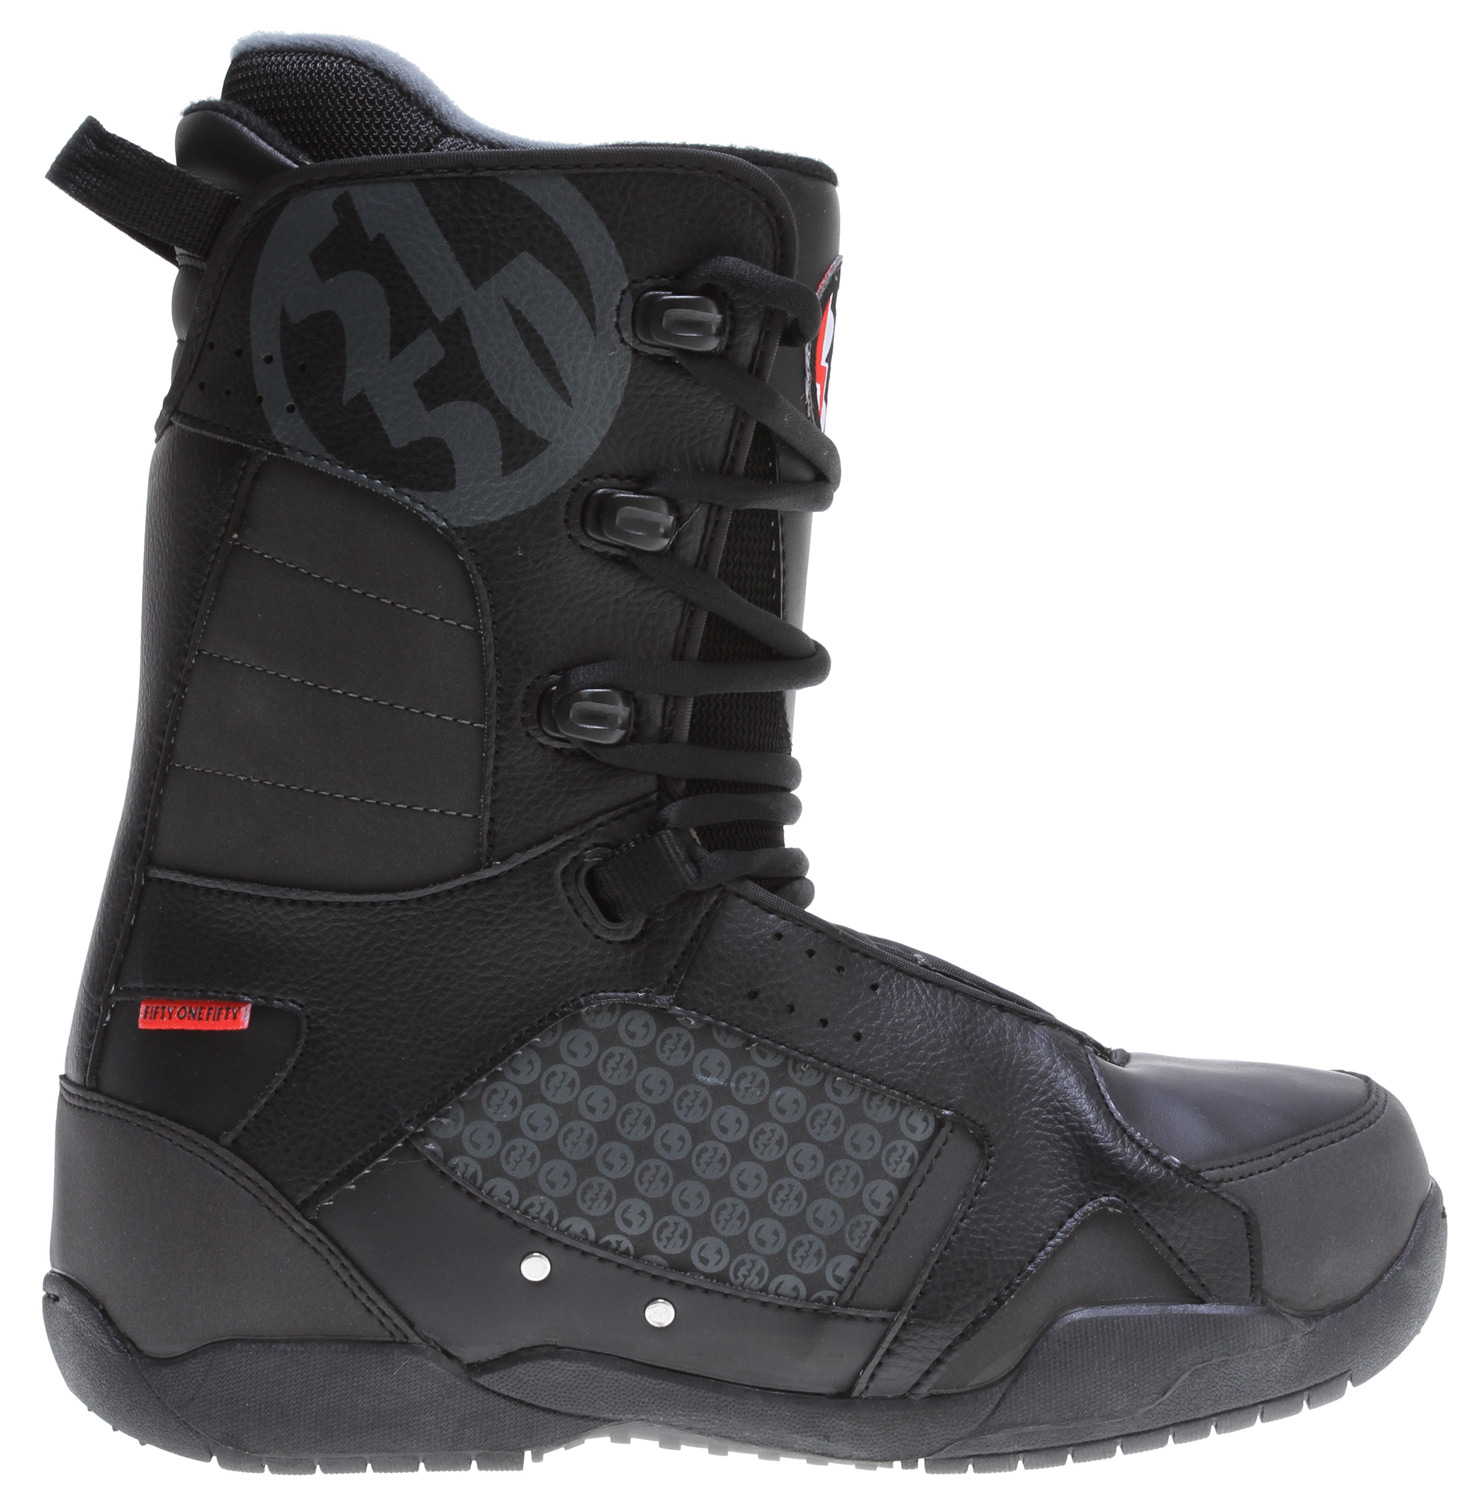 Snowboard You would pay double for boots this good, but you do not have to! The Path CTS outsole provides cushion and traction, while the Powerfit liner features ergonomic warmth and support to keep your feet comfortable all day. Designed for all-mountain riding.Key Features of the 5150 Squadron Snowboard Boots: Path CTS Outsole with durable Rubber for a grip that will not slip PowerFit Liner with Lace Lock and Removable Insole Fitted Ankle Pocket with heel hold pads Rugged Waterproof Synthetic Leather Body Construction Webbing Lace Loops with Speed Hooks for easy lacing Multi-Zone Ankle Flex Points - $69.85